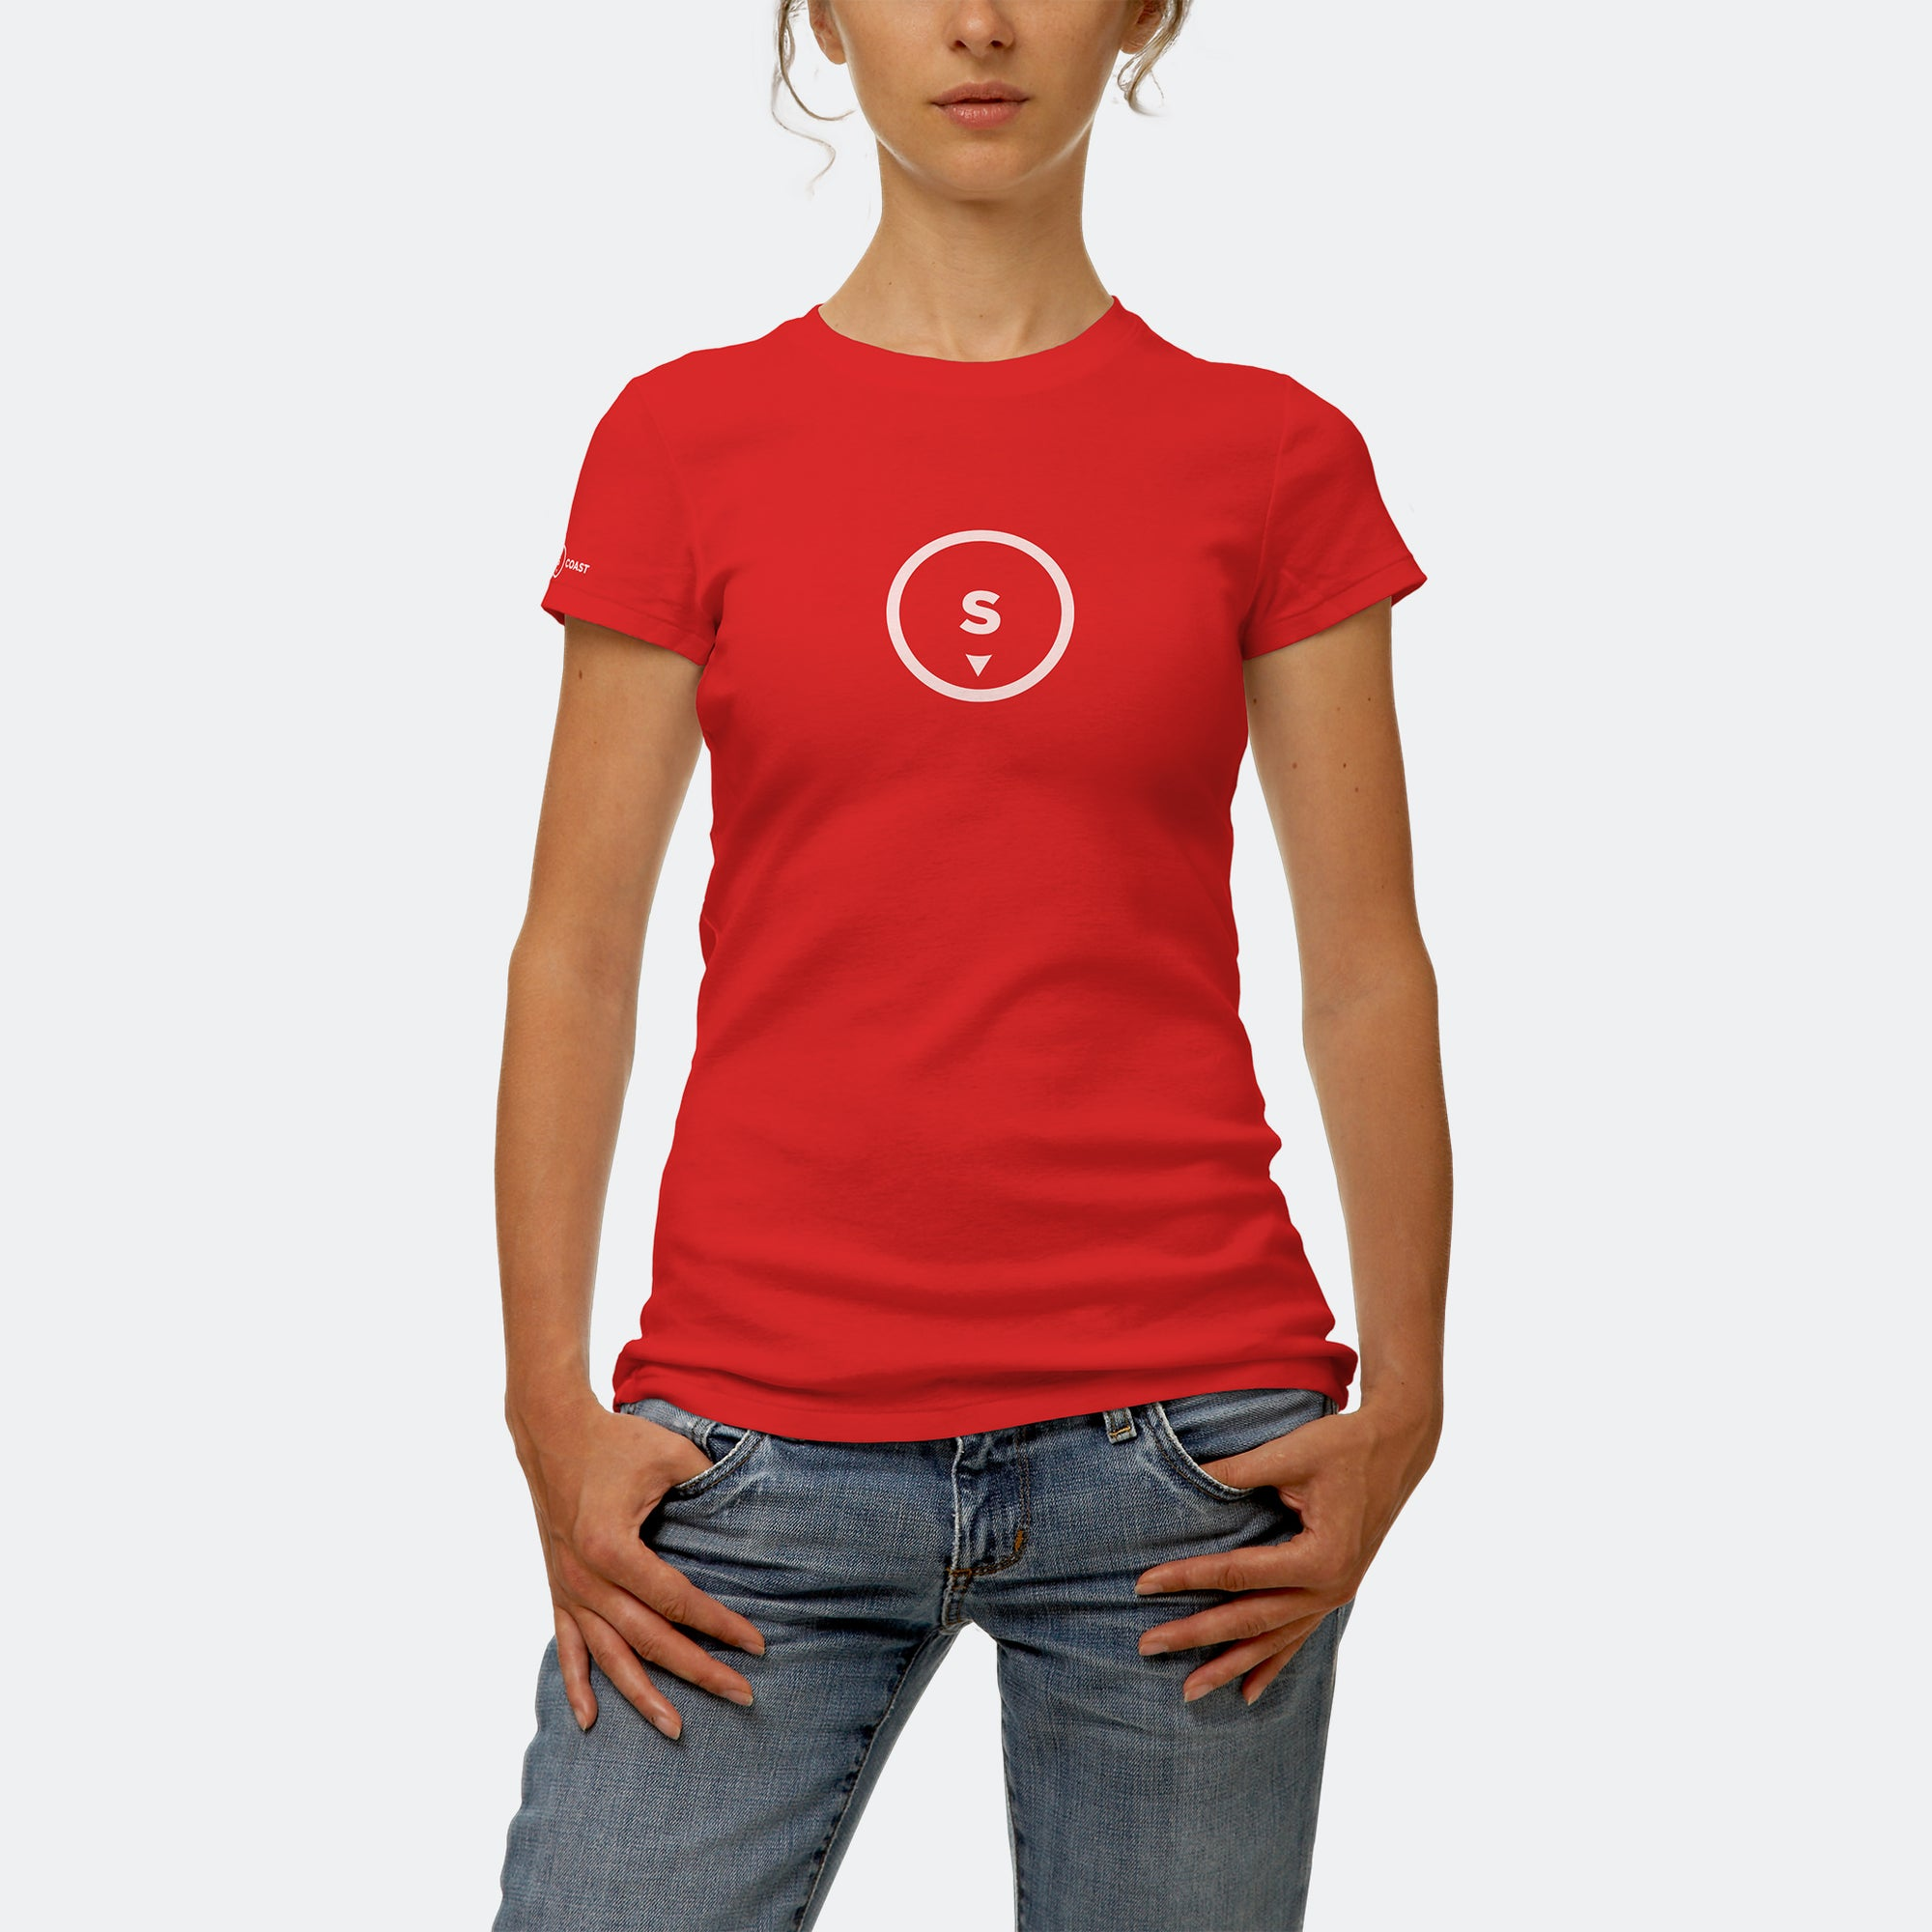 Ladies t-shirt (red)